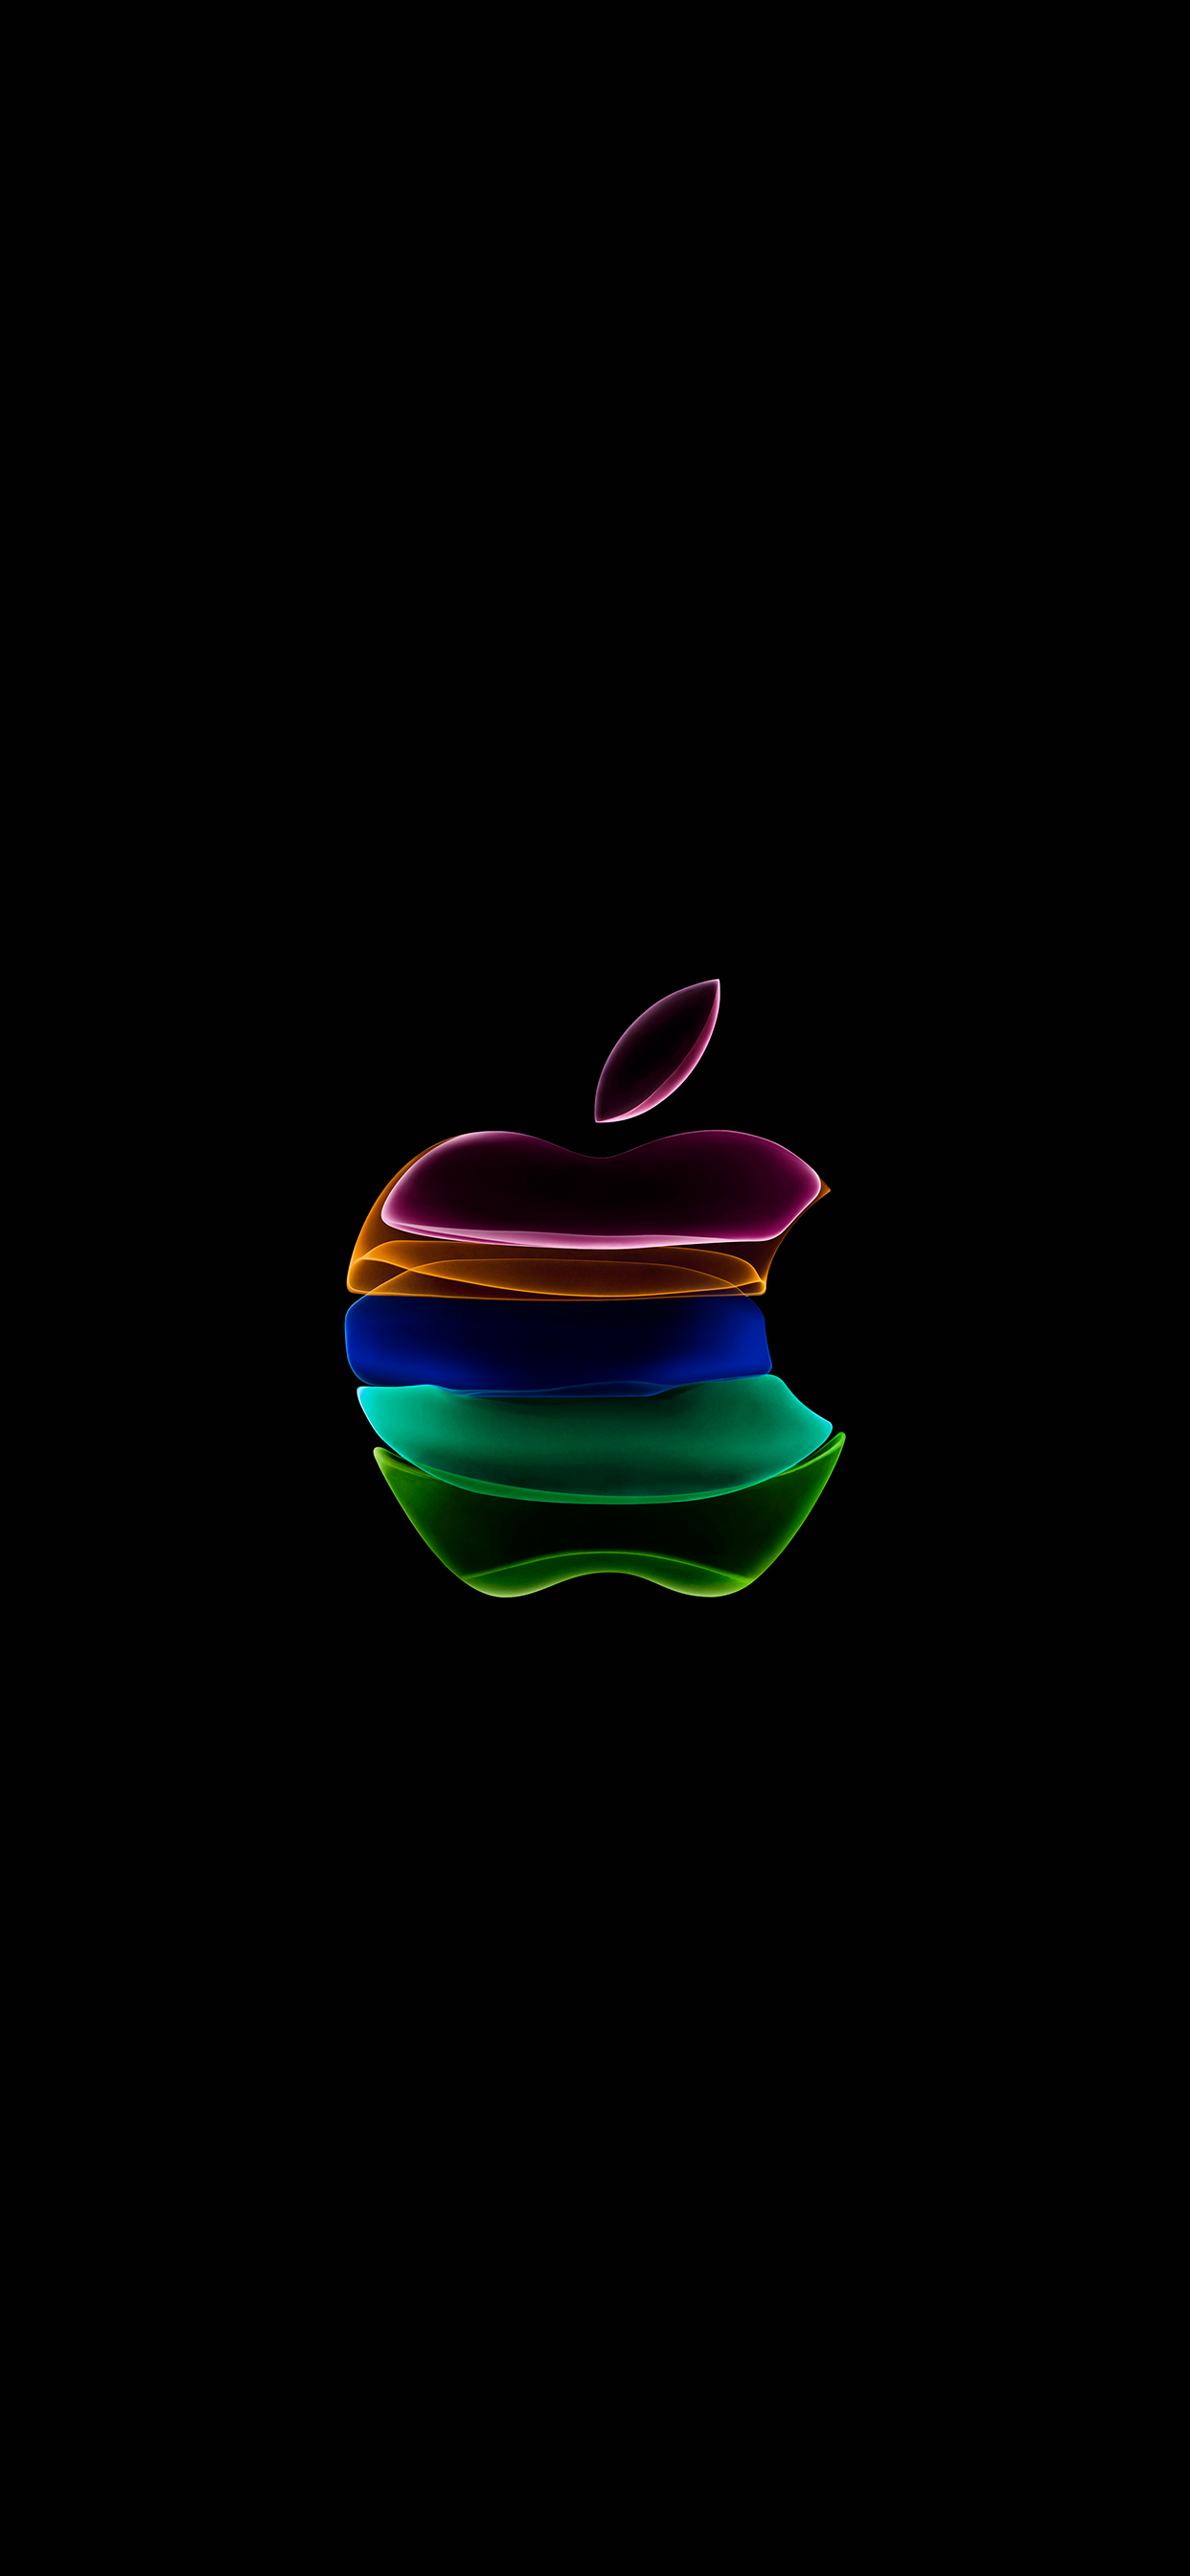 Apple Event Inspired Wallpapers For Iphone Ipad Ultralinx